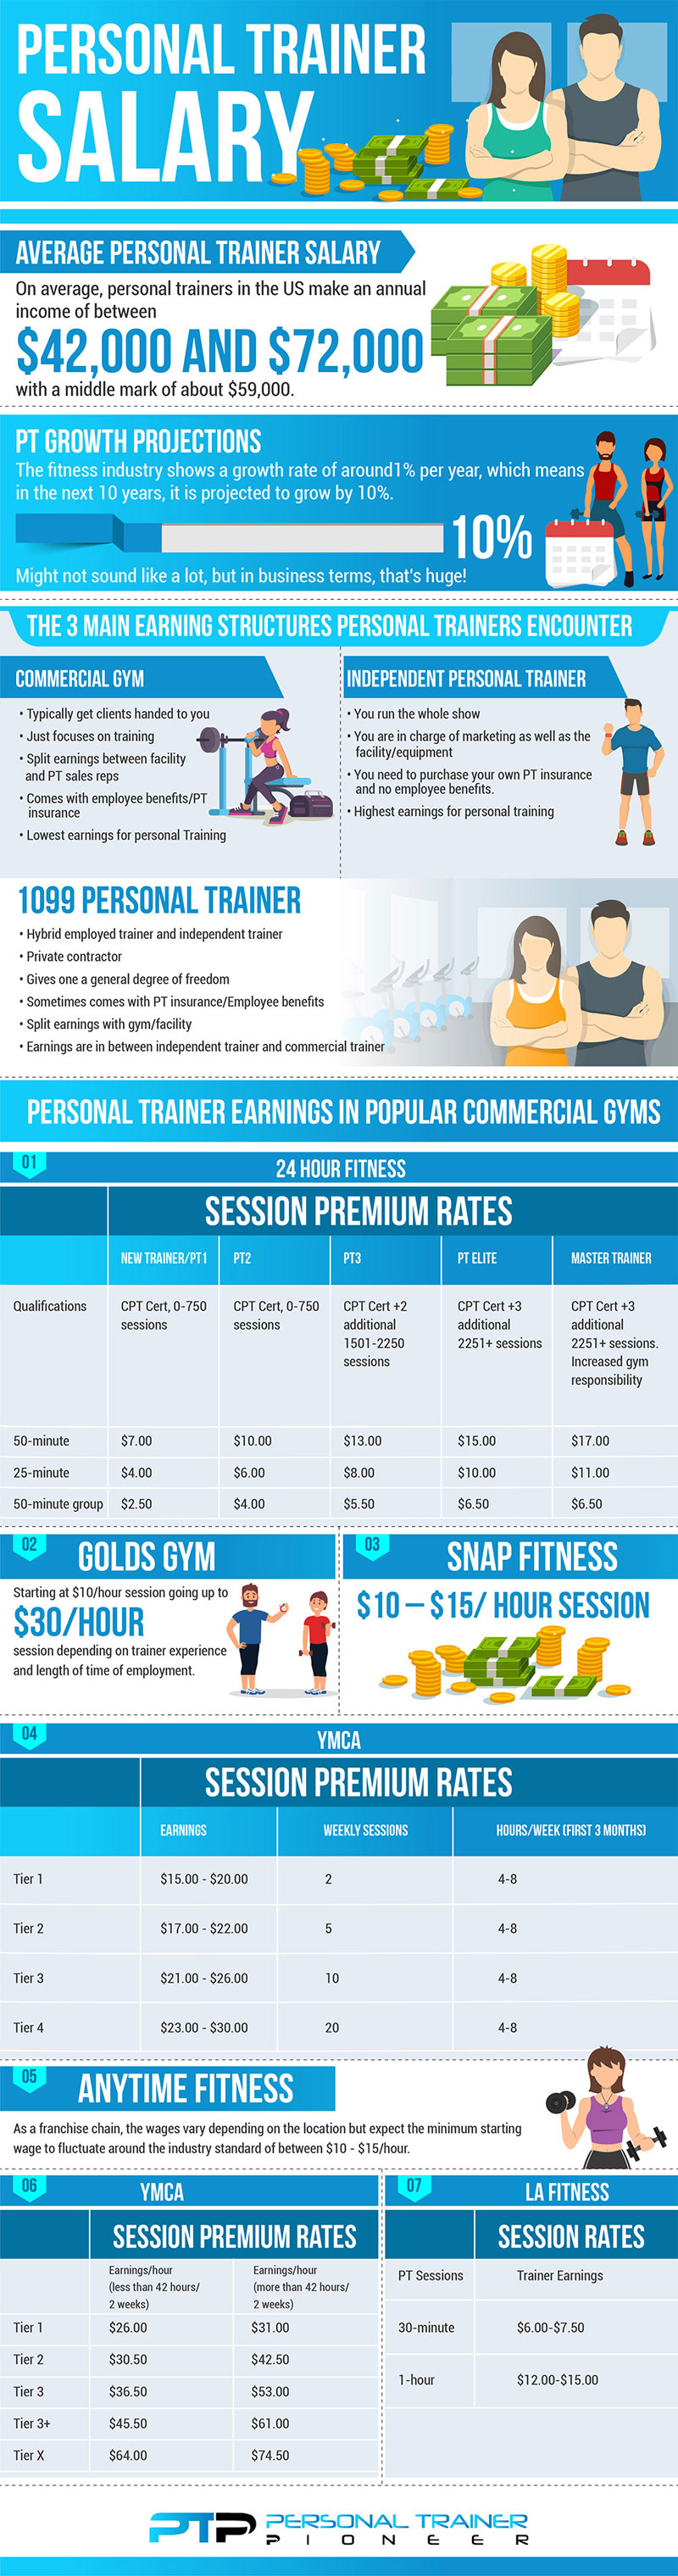 How Much Do Personal Trainers Make